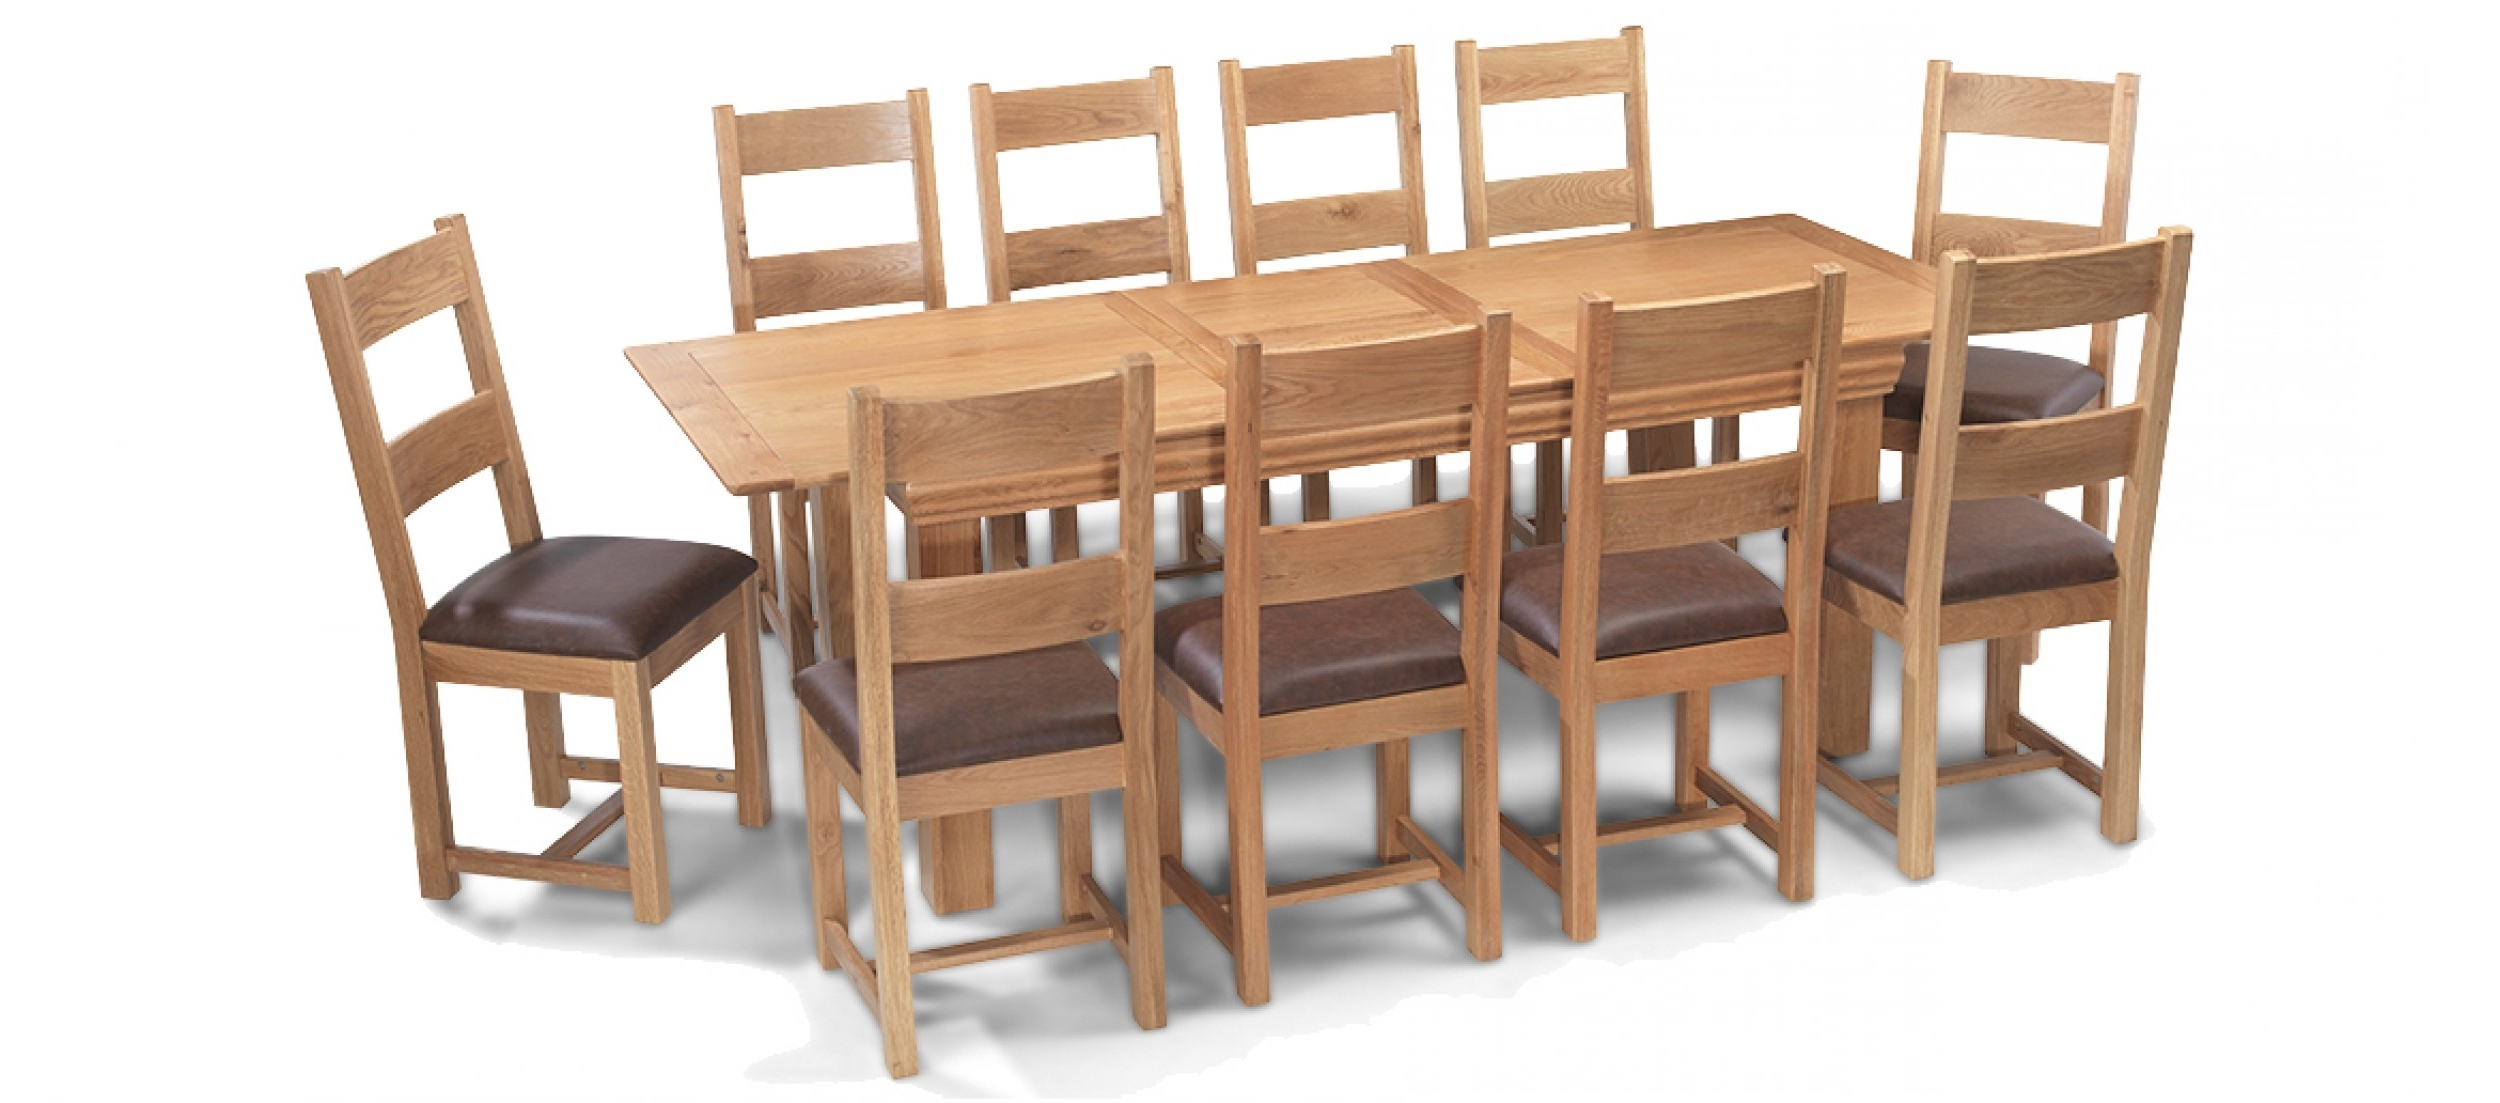 10 Seat Dining Tables And Chairs With Regard To Recent Constance Oak 180 230 Cm Extending Dining Table And 10 Chairs (View 14 of 25)